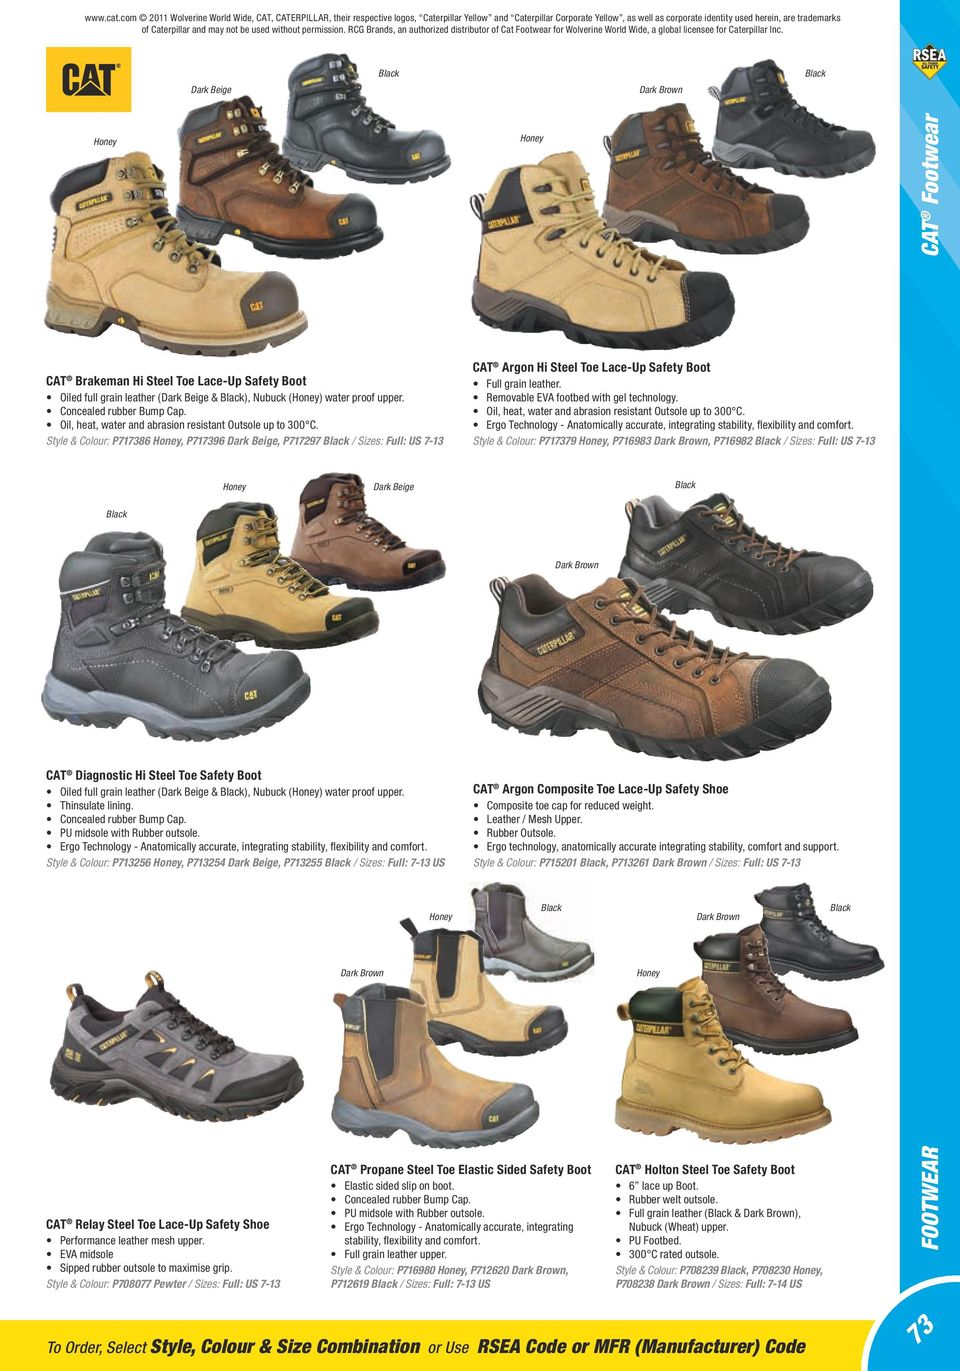 Footwear Australian New Zealand Standards 58 Preventing Cut Engineer Safety Boots Iron Hiking Pu Leather Black And May Not Be Used Without Permission Rcg Brands An Authorized Distributor Of Cat